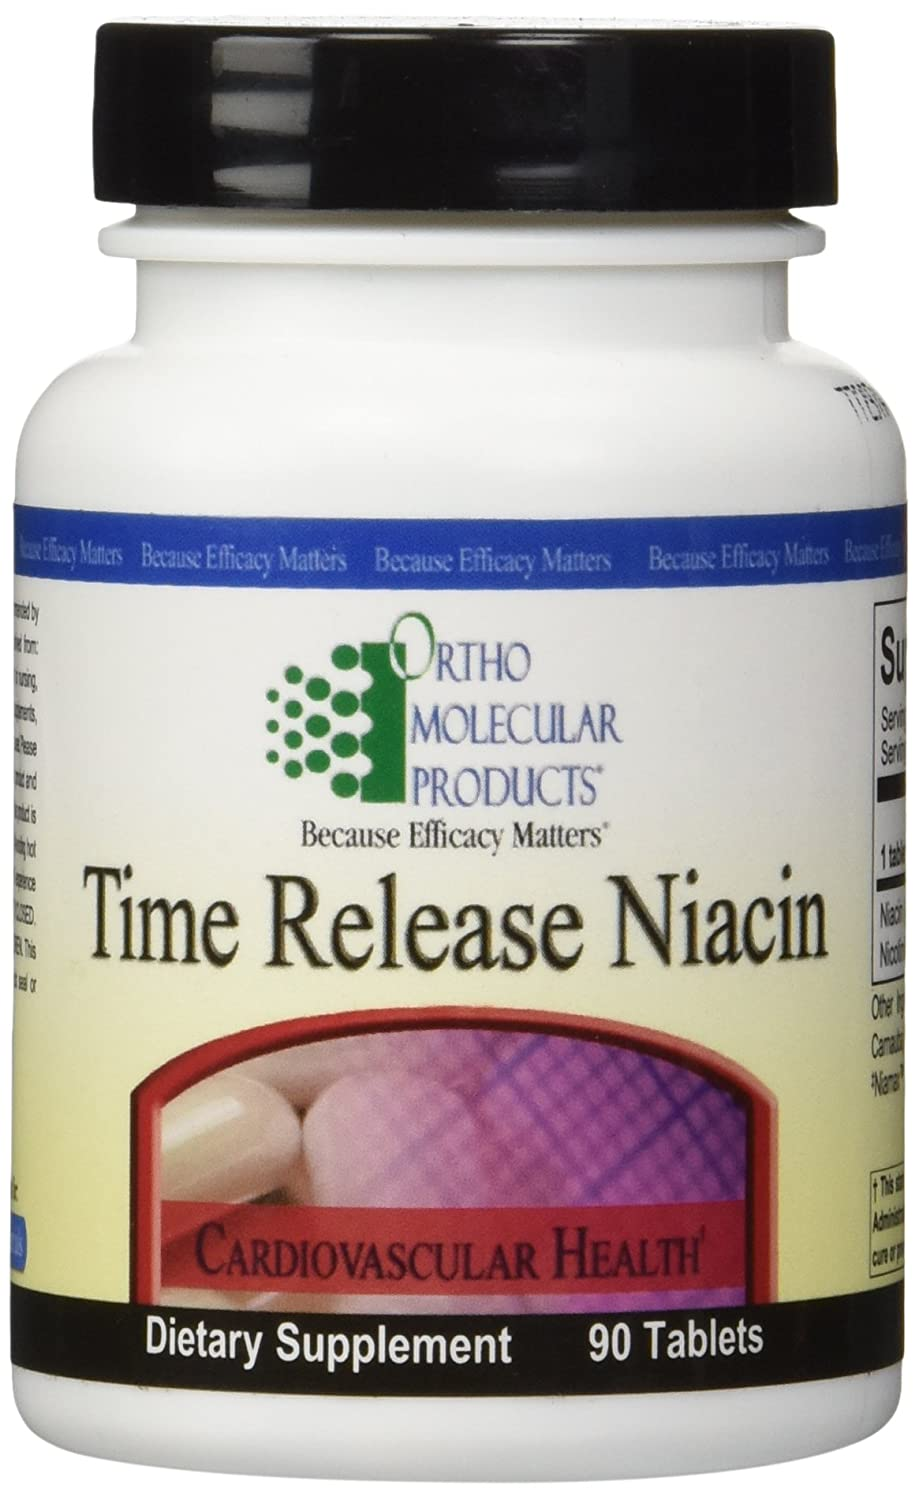 Ortho Molecular – Time Release Niacin – 90 Tablets